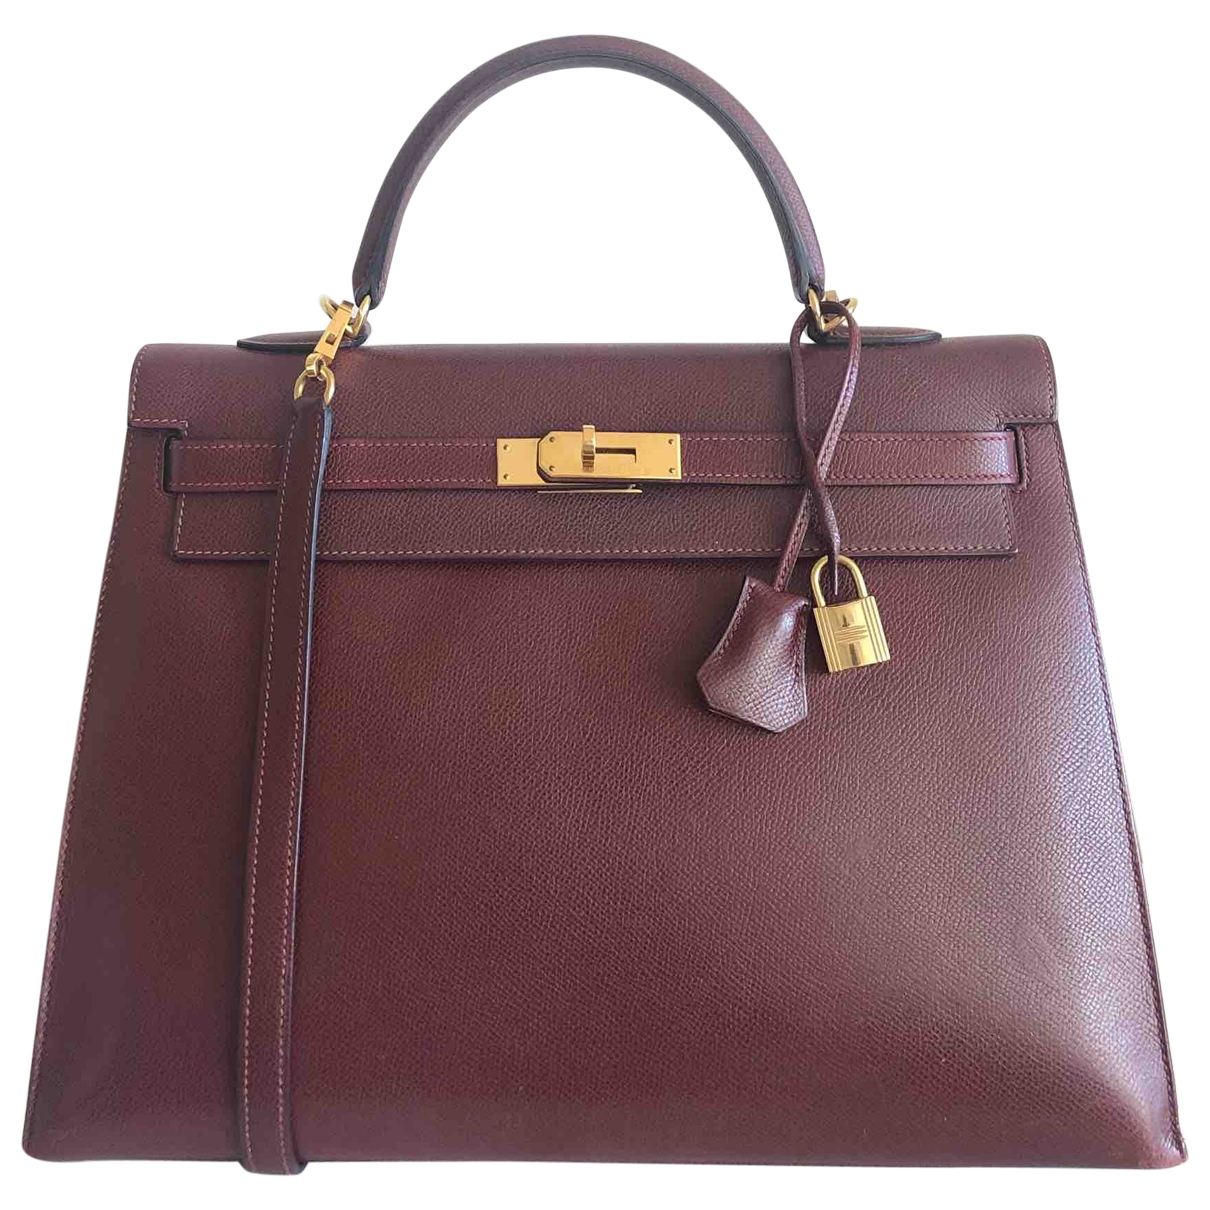 Hermes Kelly 35 Handtasche in  Bordeauxrot Leder